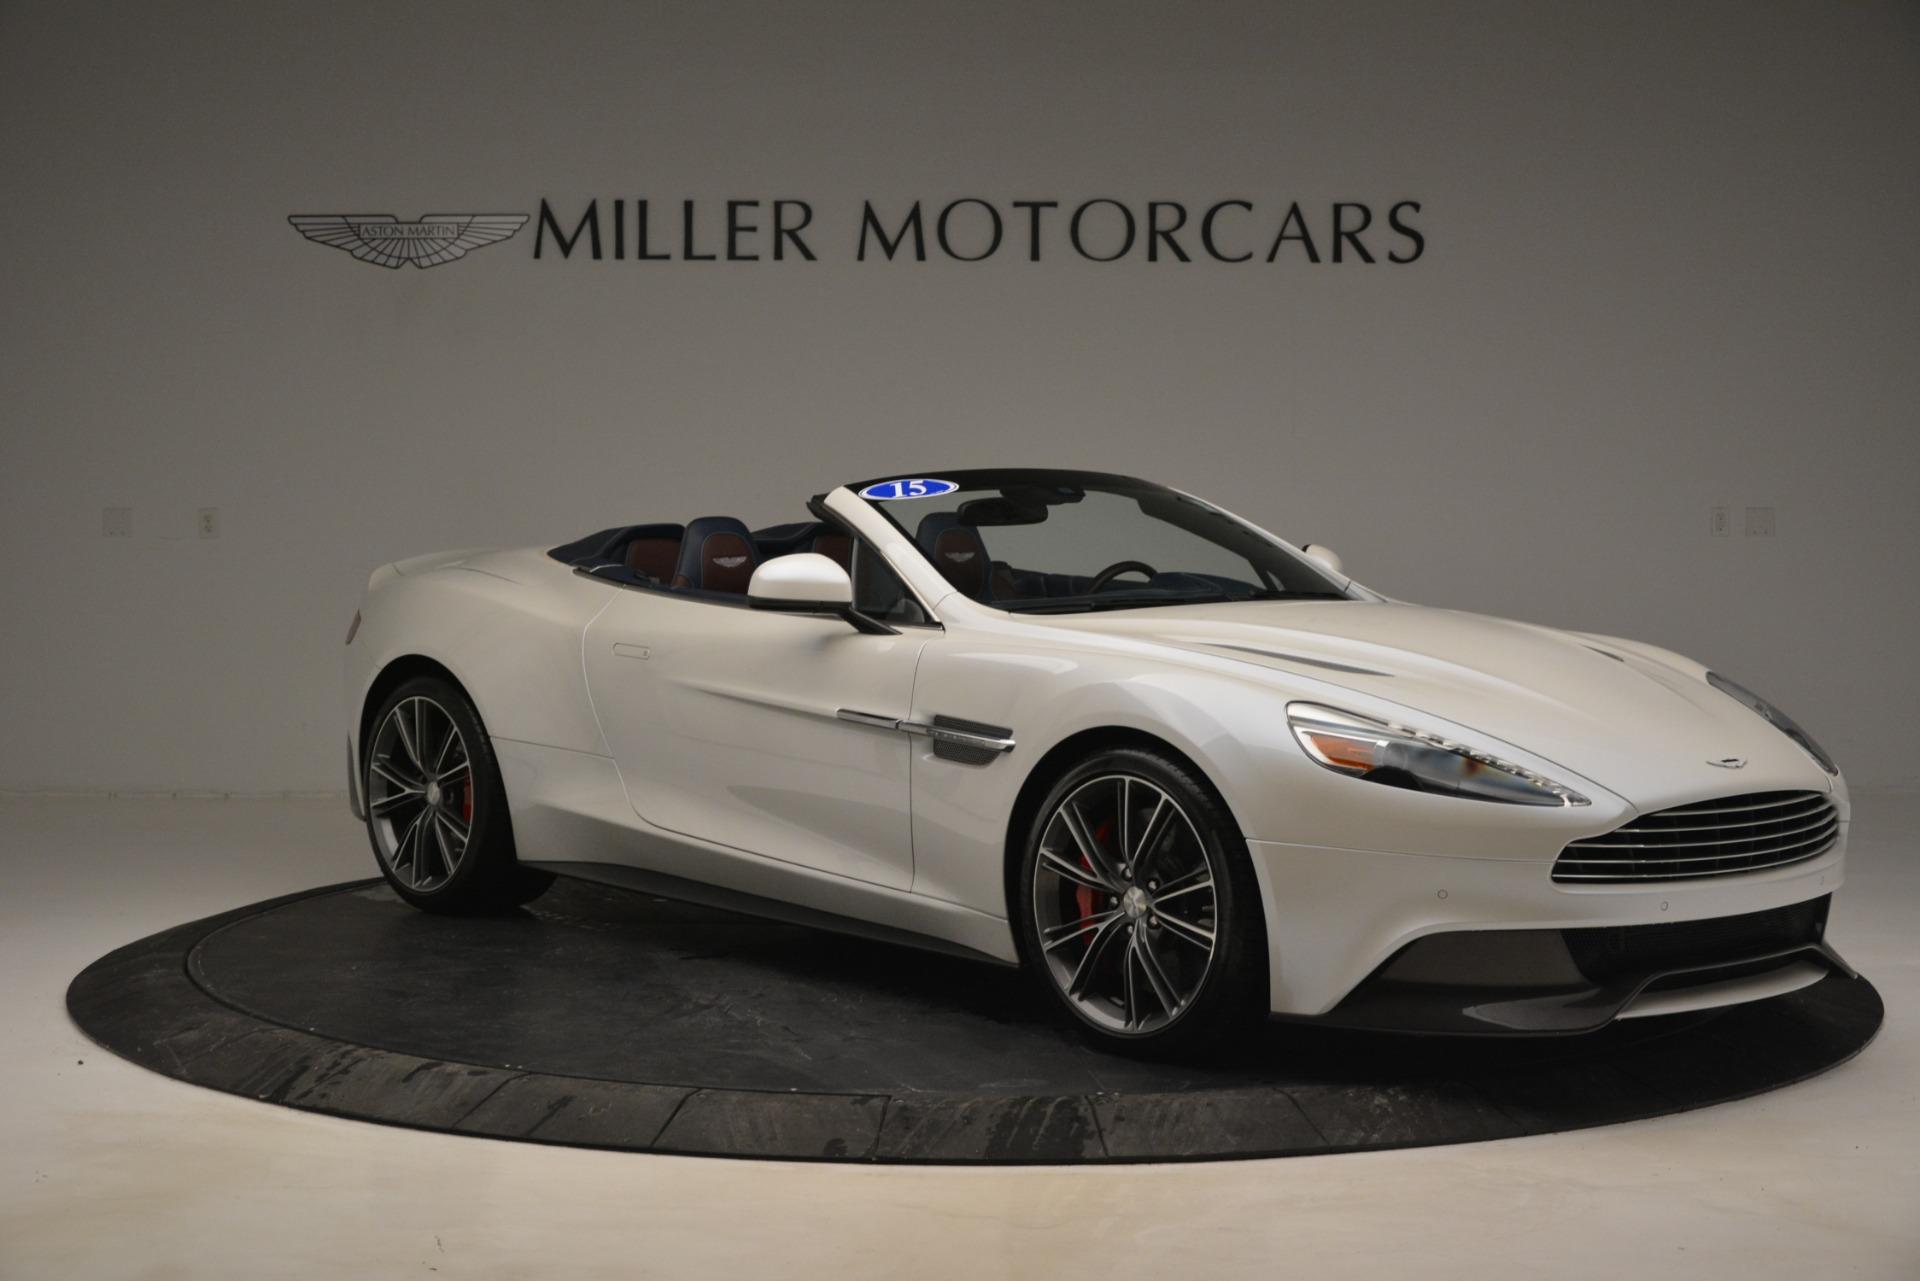 Used 2015 Aston Martin Vanquish Convertible For Sale In Westport, CT 2982_p10